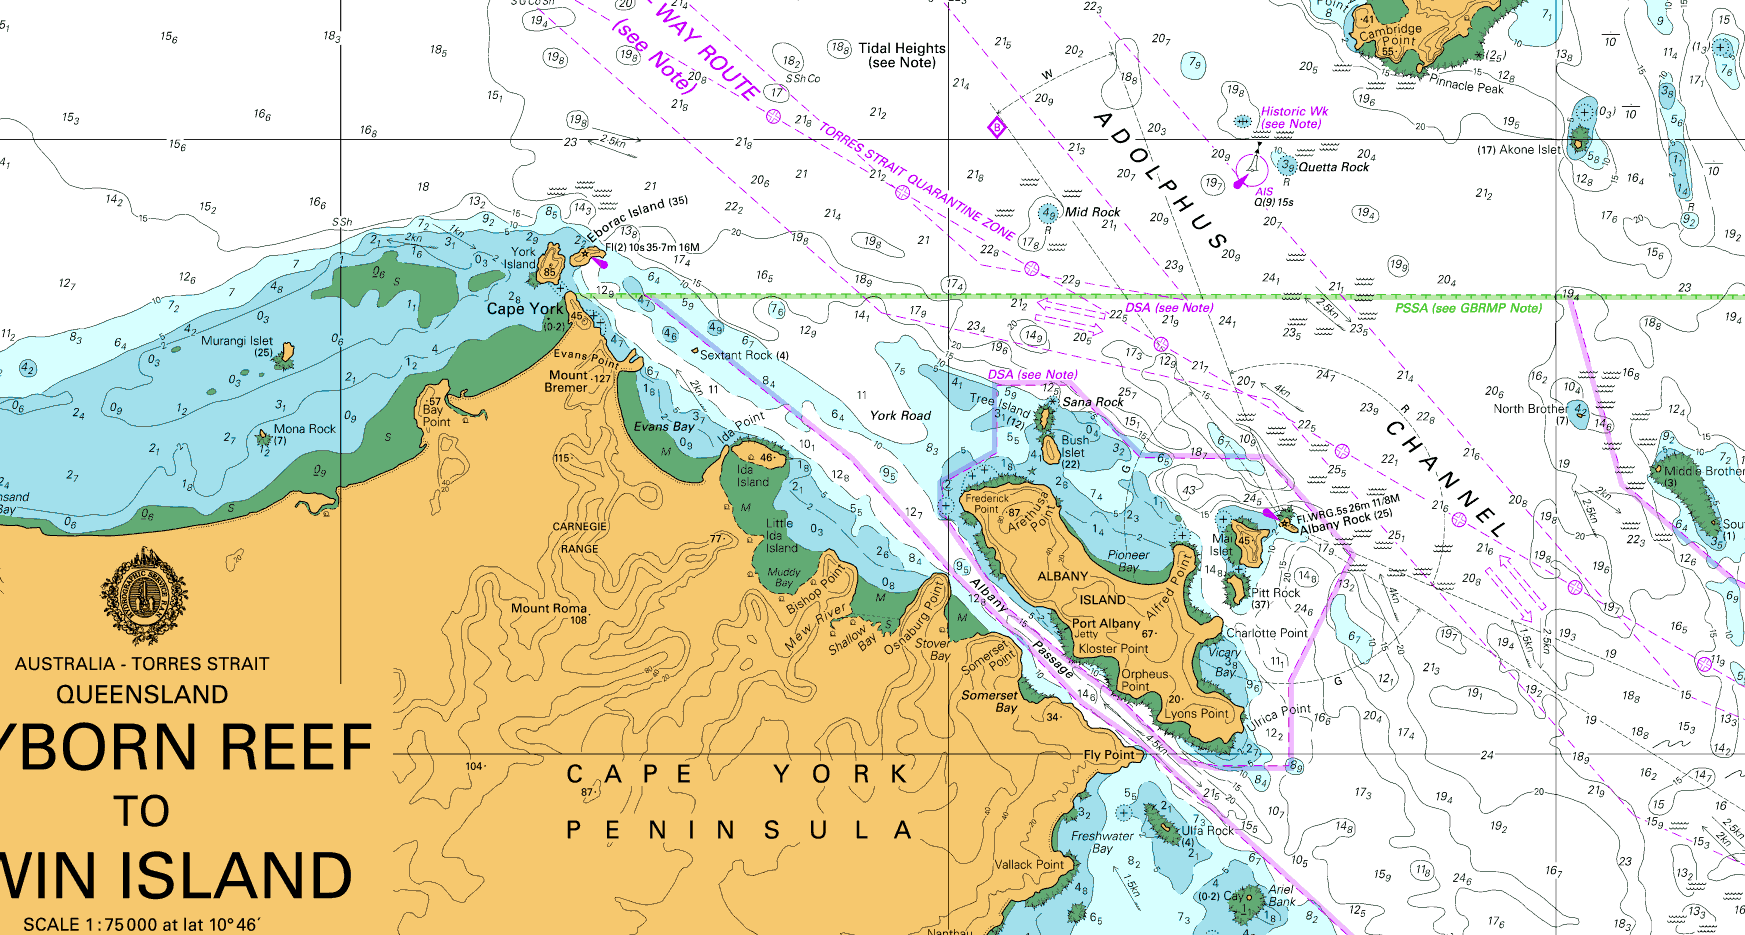 Carte Australian Hydrographic Office